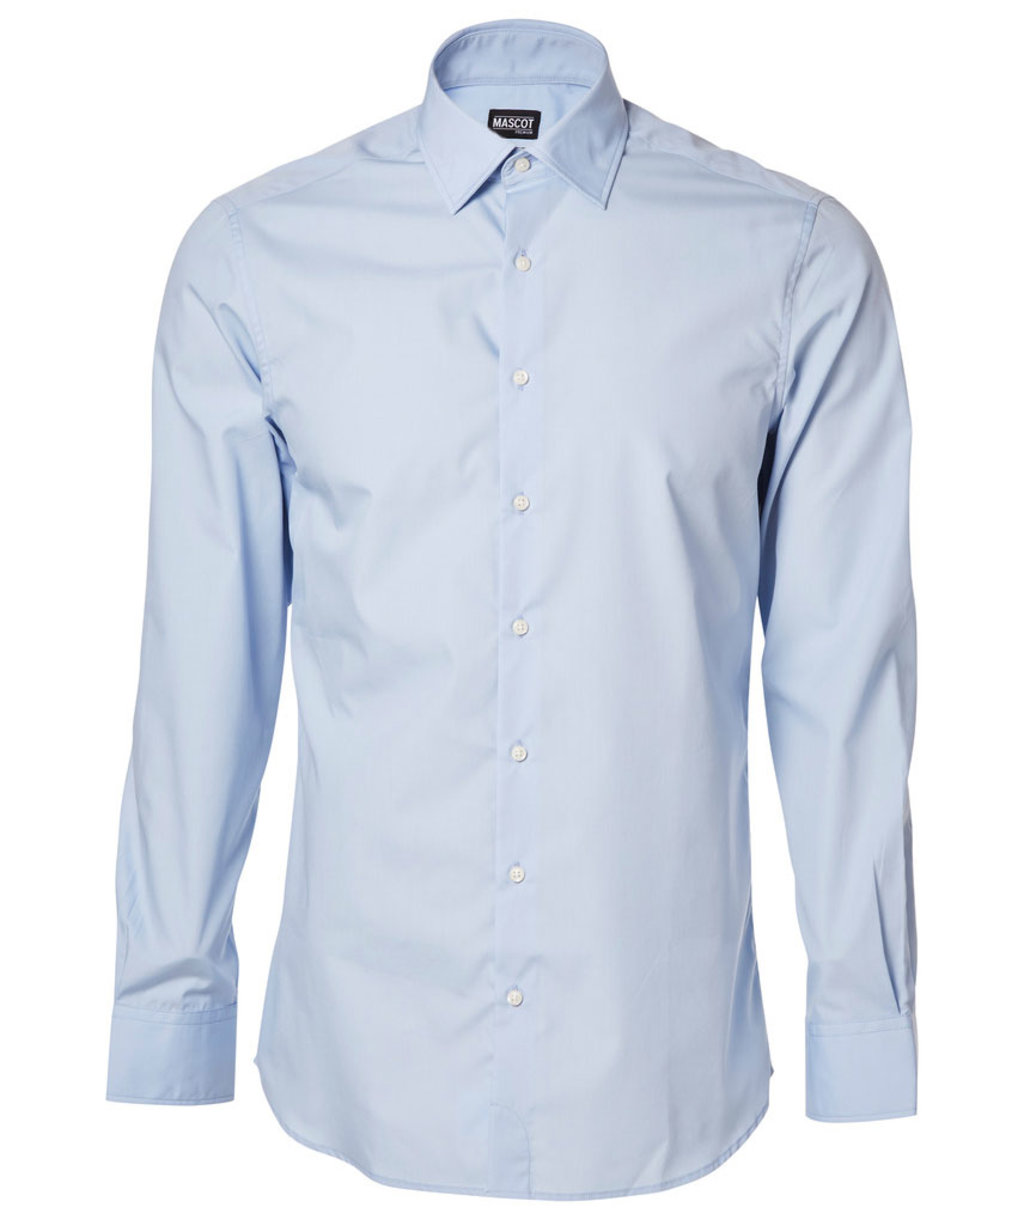 Mascot Frontline Roanne shirt, Light Blue